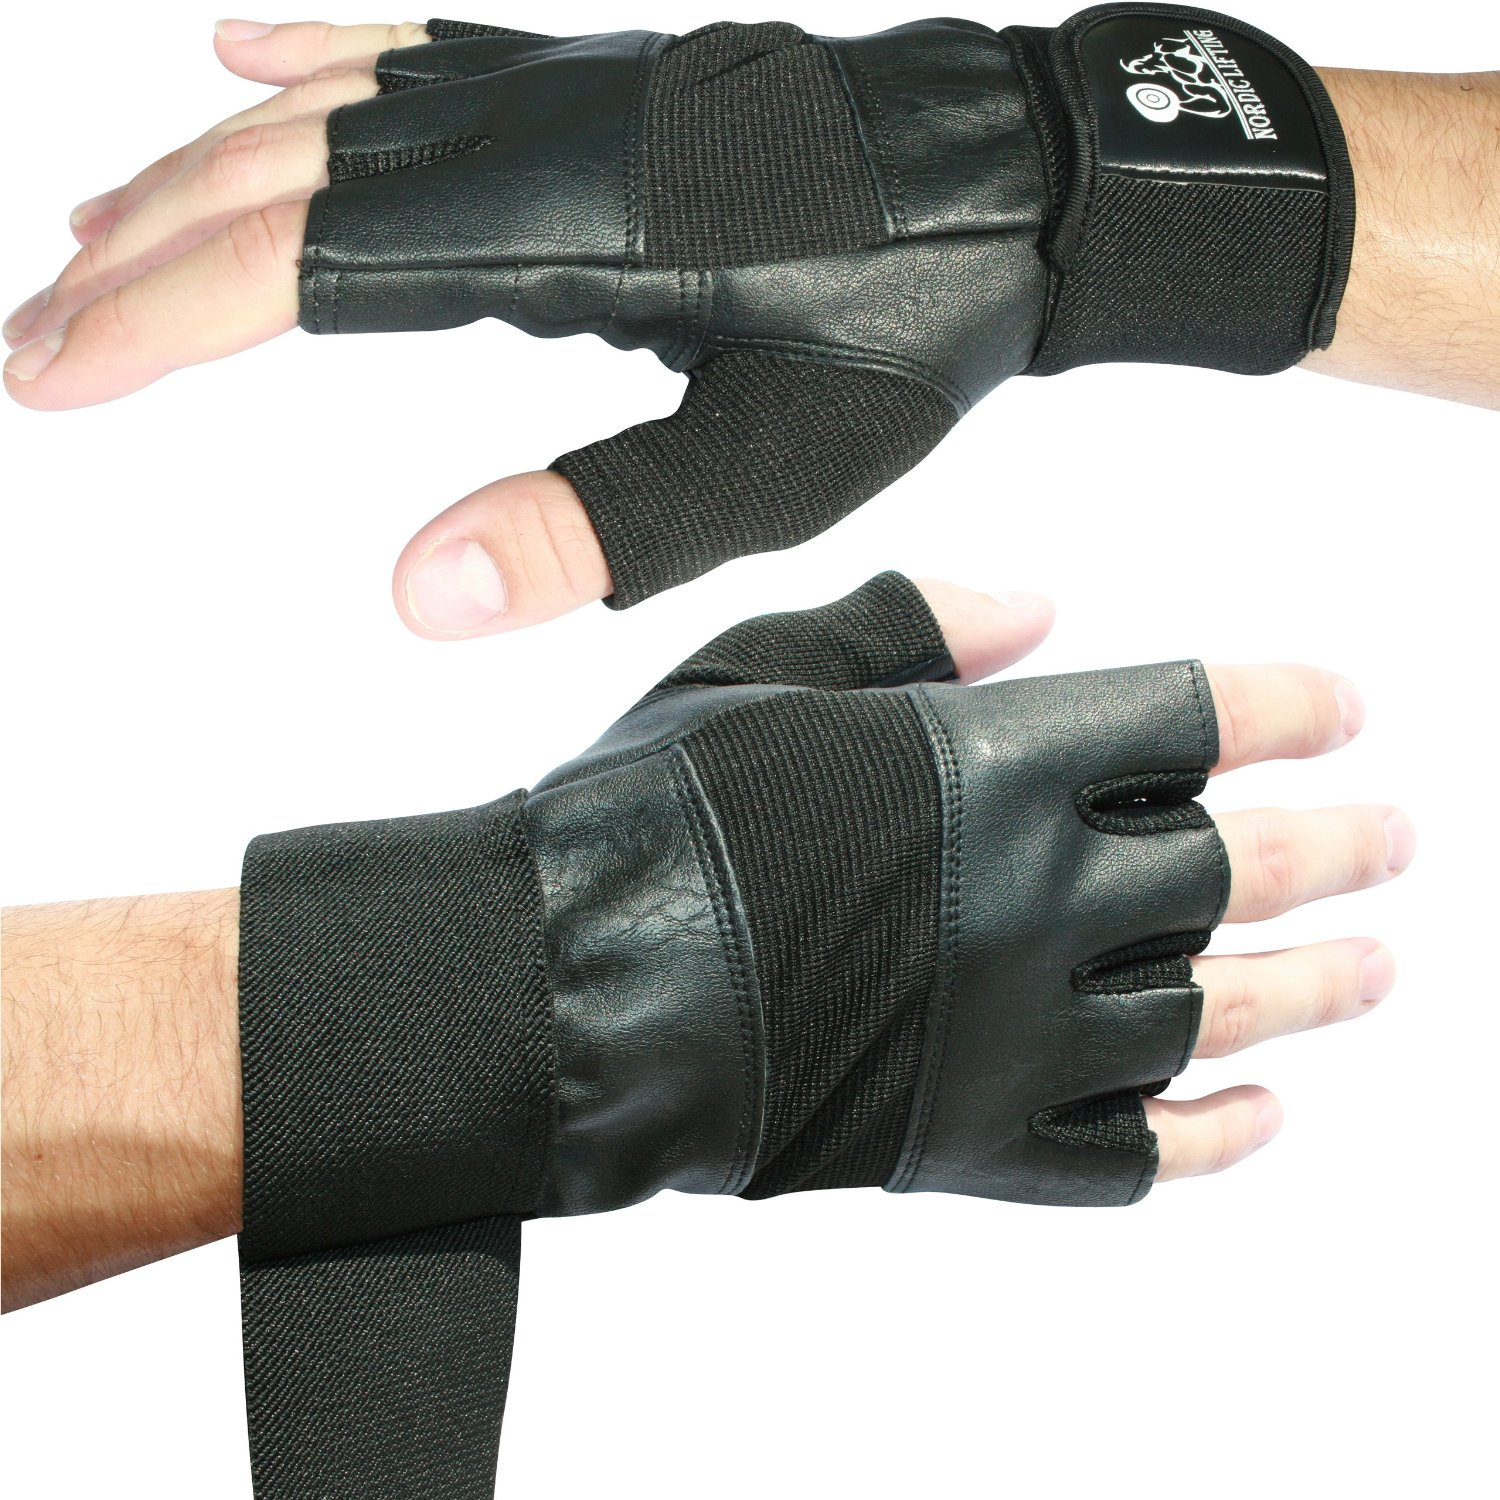 "Nordic Lifting Weight Lifting Gloves for Men and Women -12"" Wrist Wrap Support and 1 Year Warranty, Available in 5 Sizes"